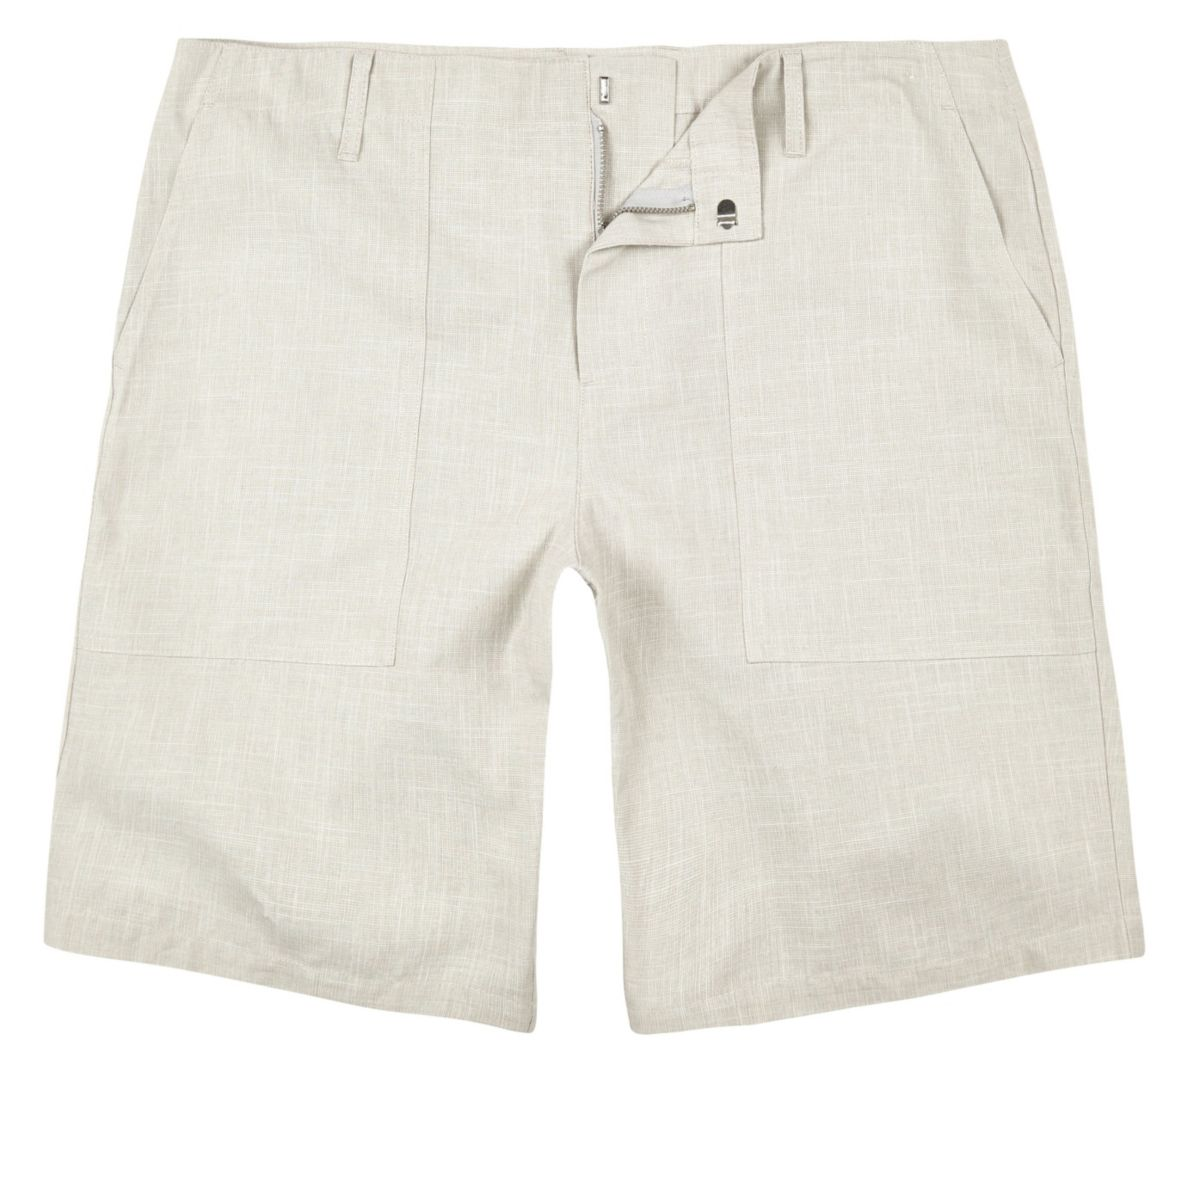 Stone smart textured chino shorts